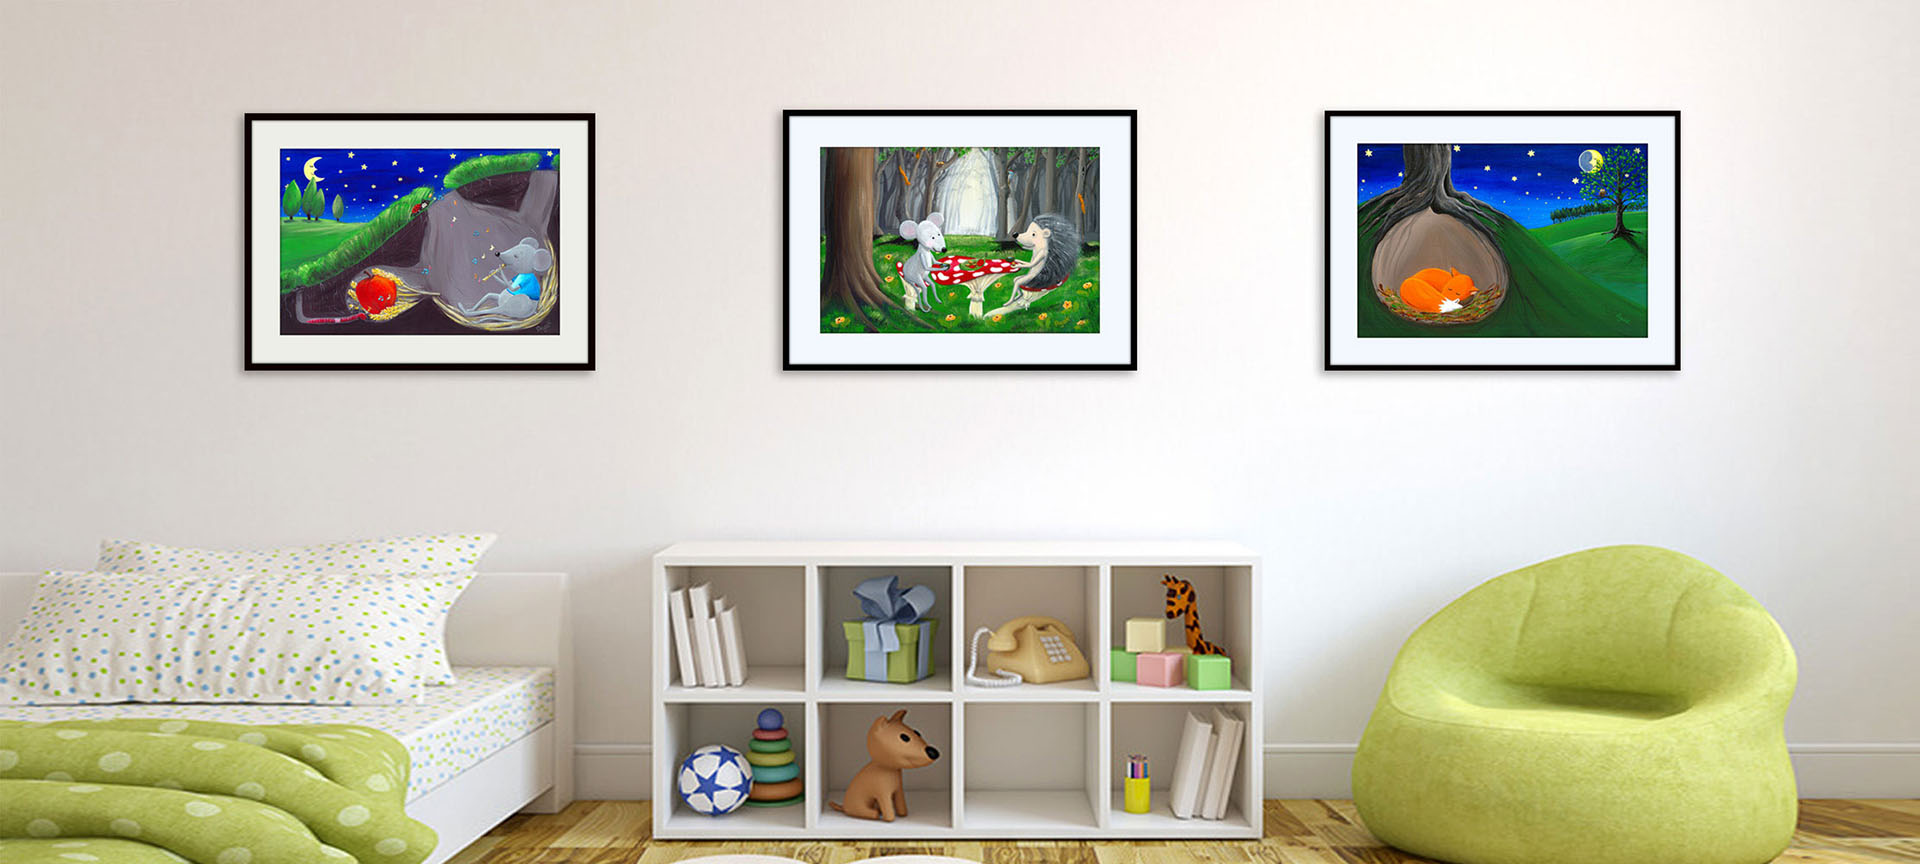 Kids bedroom with three woodland themed pictures on a wall.